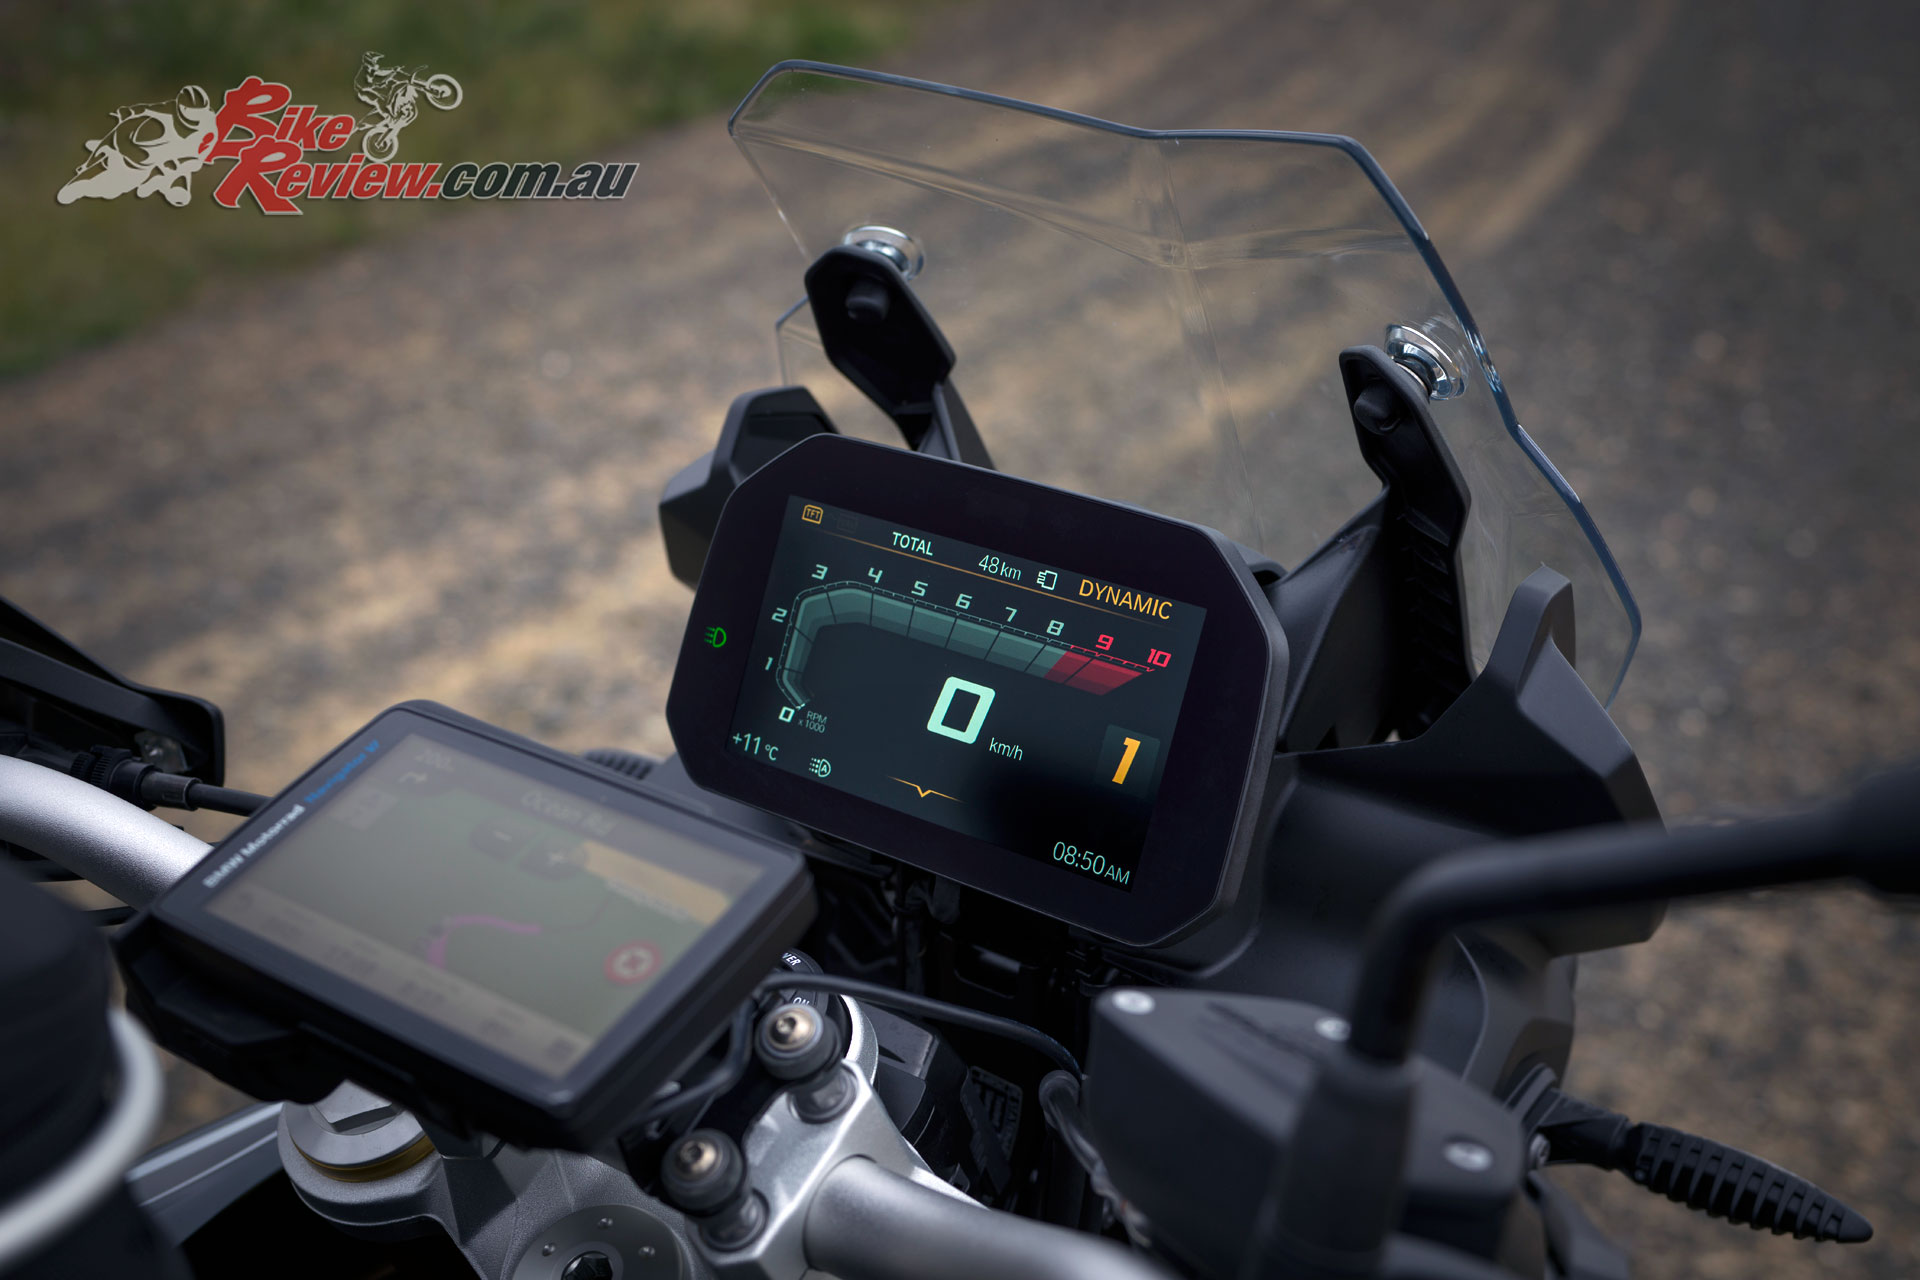 The 2019 BMW F 850 GS also offers smartphone connectivity with the free companion app